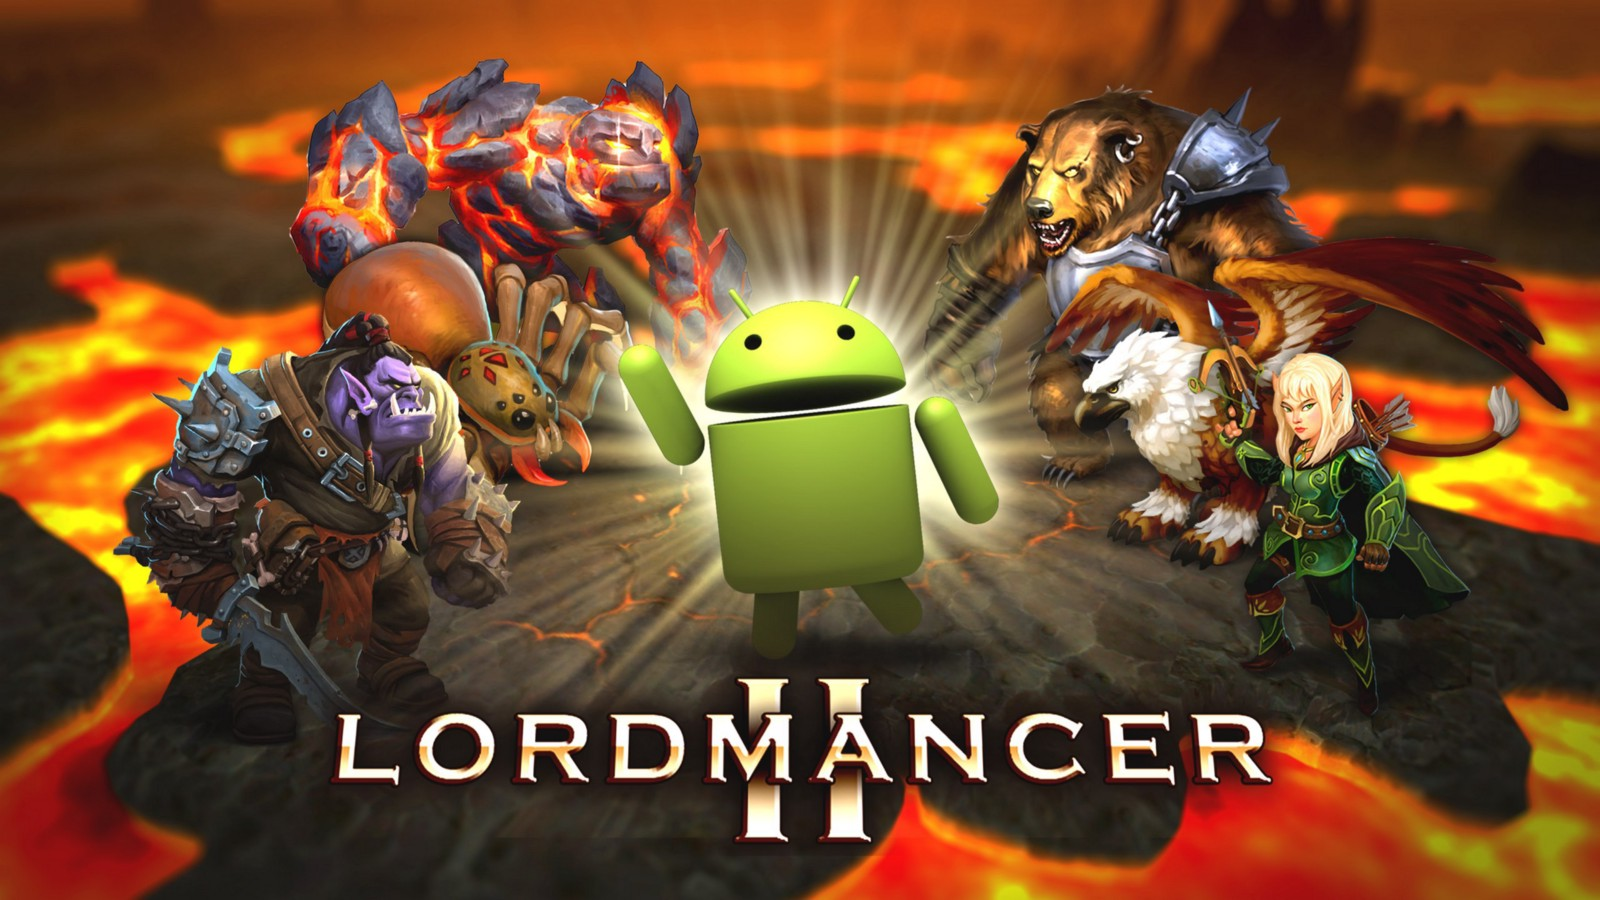 /mobile-mmorpg-lordmancer-ii-is-officially-launched-on-android-9c8dd1e91b42 feature image